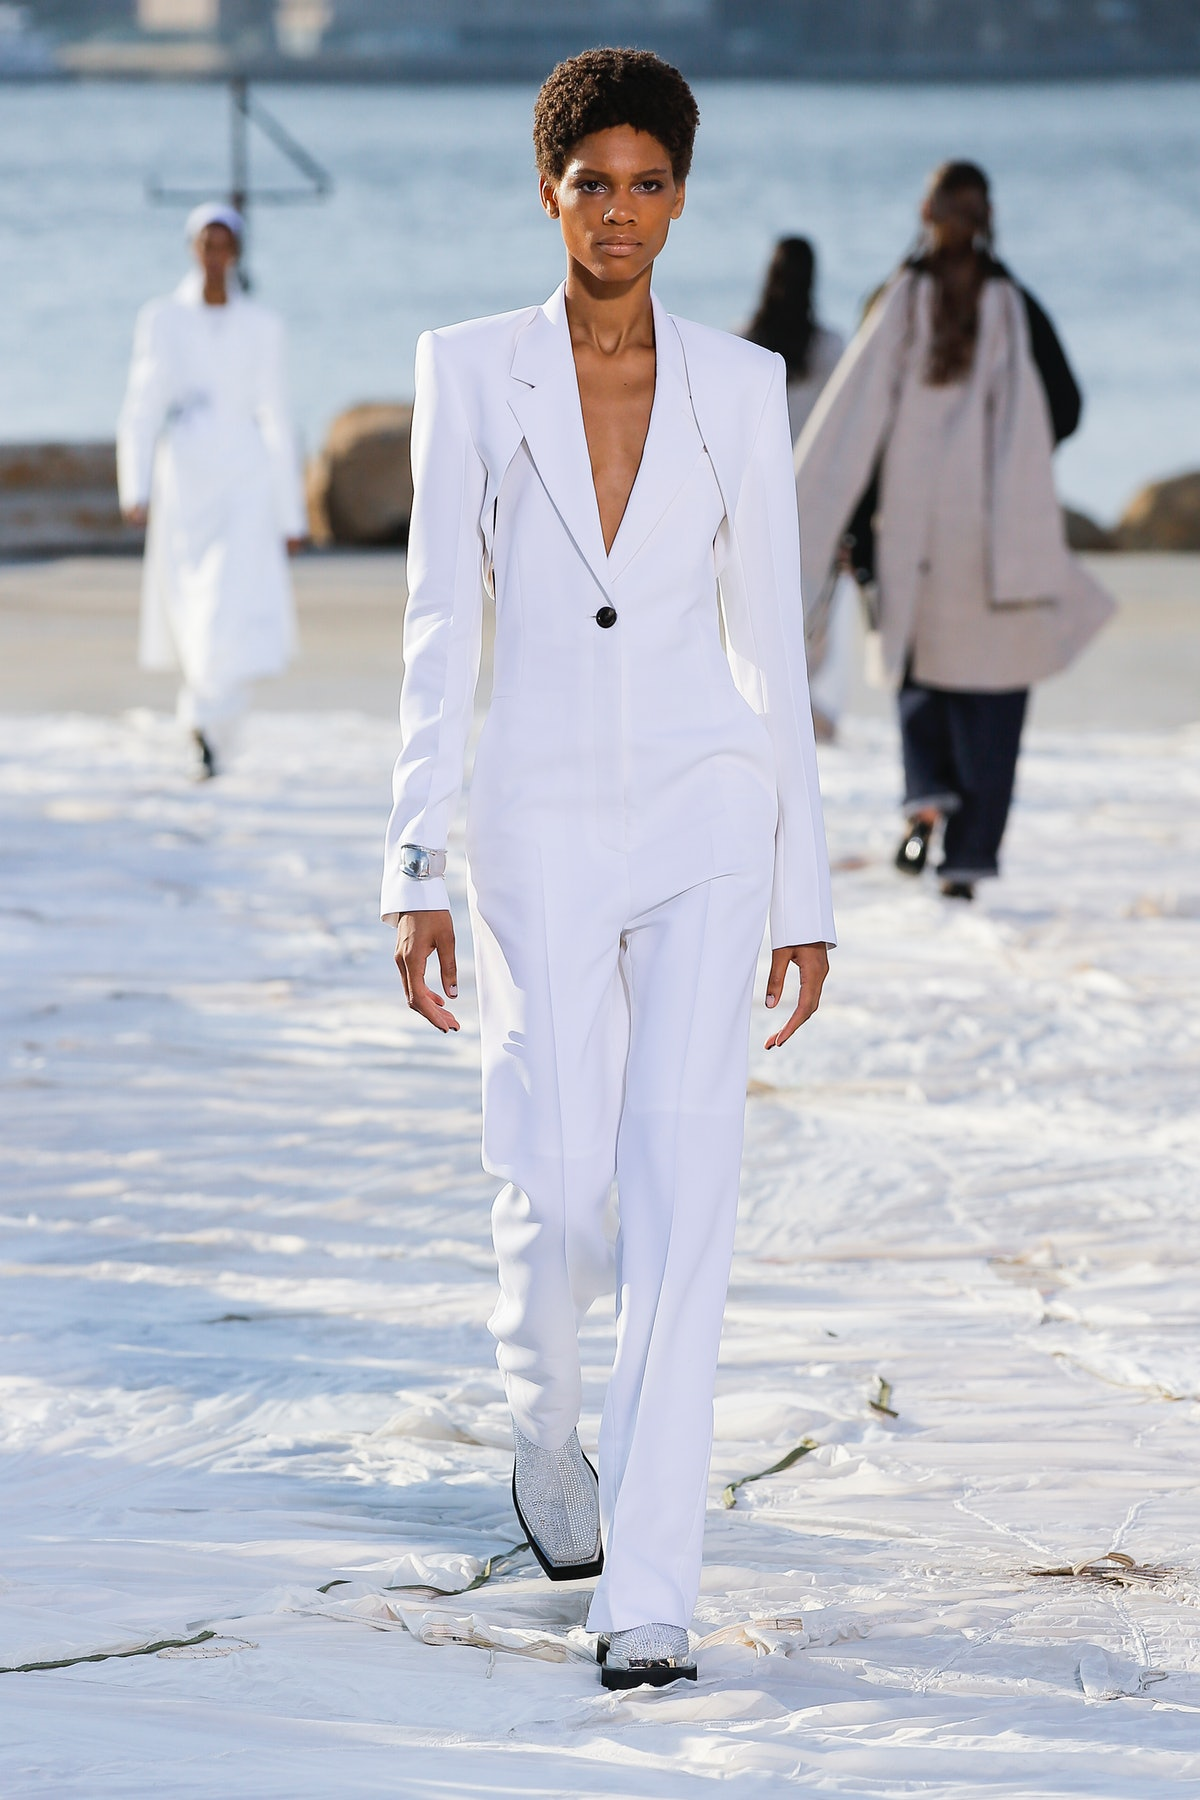 A model walks the runway during the Peter Do Ready to Wear Spring/Summer 2022 fashion show as part o...